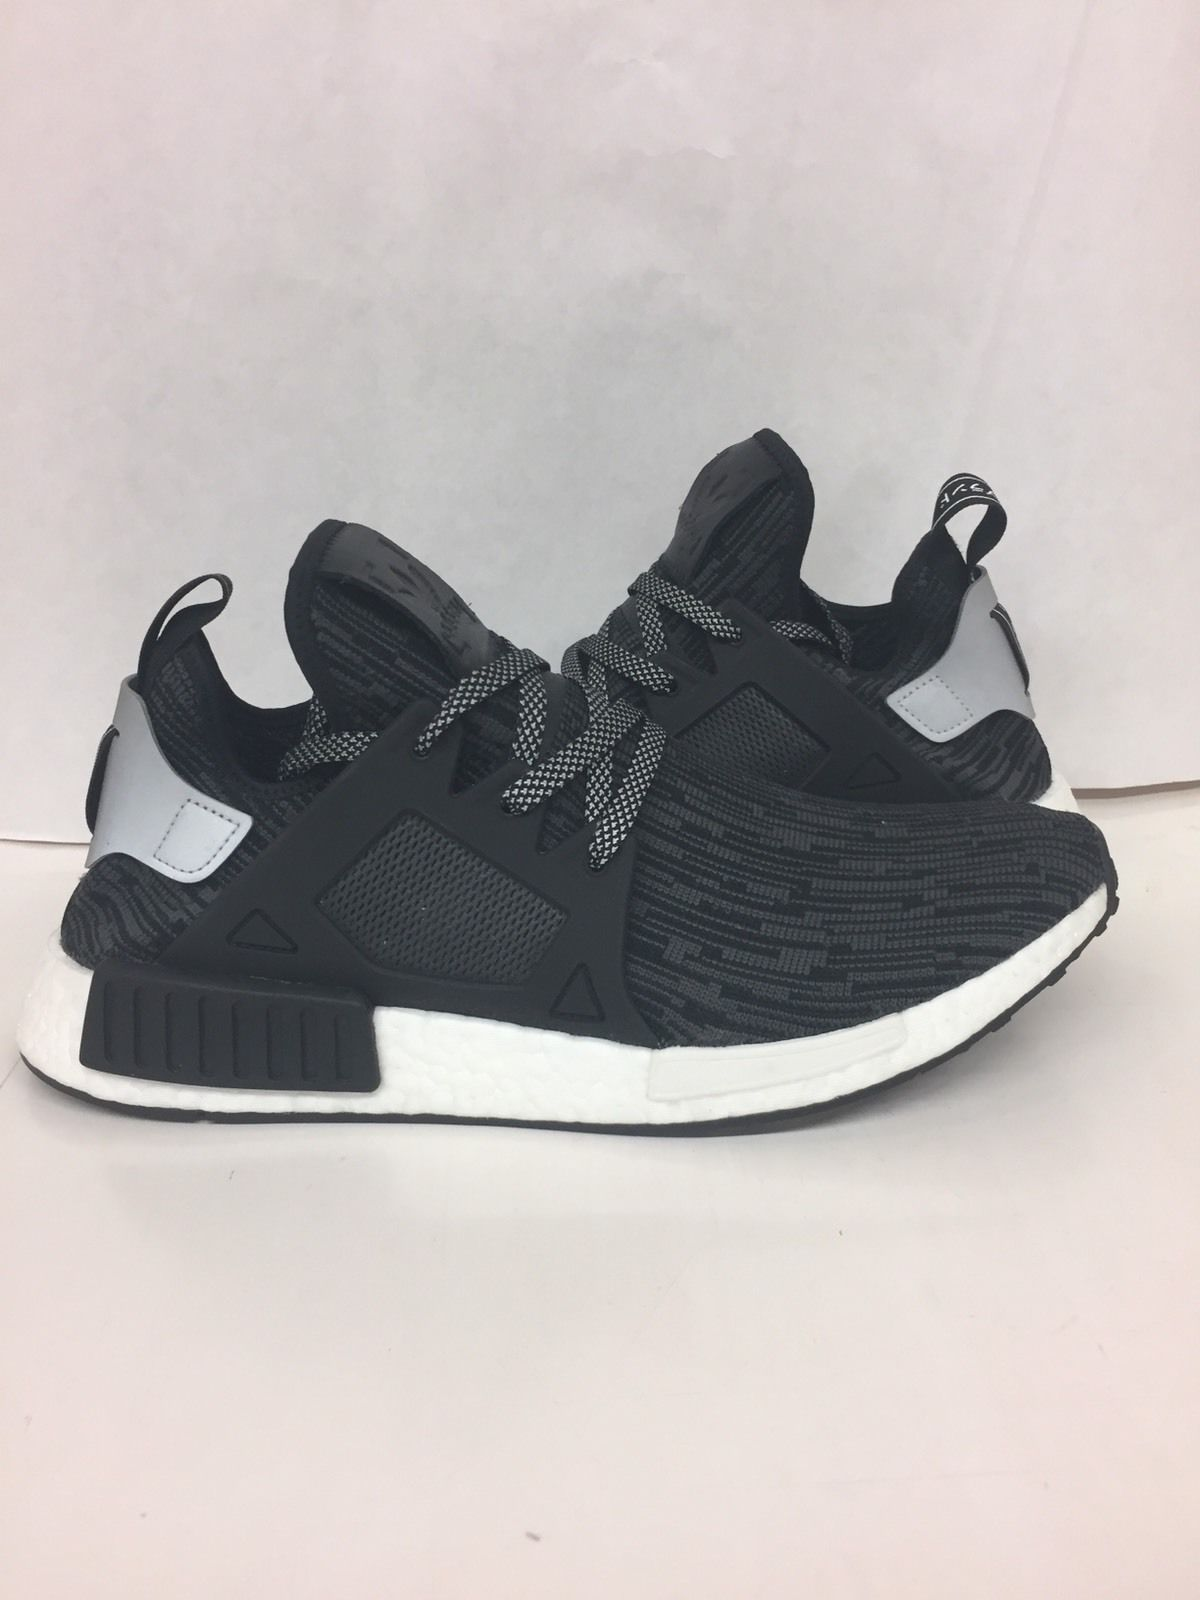 adidas nmd xr1 pk prime knit tricolor black mens shoes size 11.5 brand new